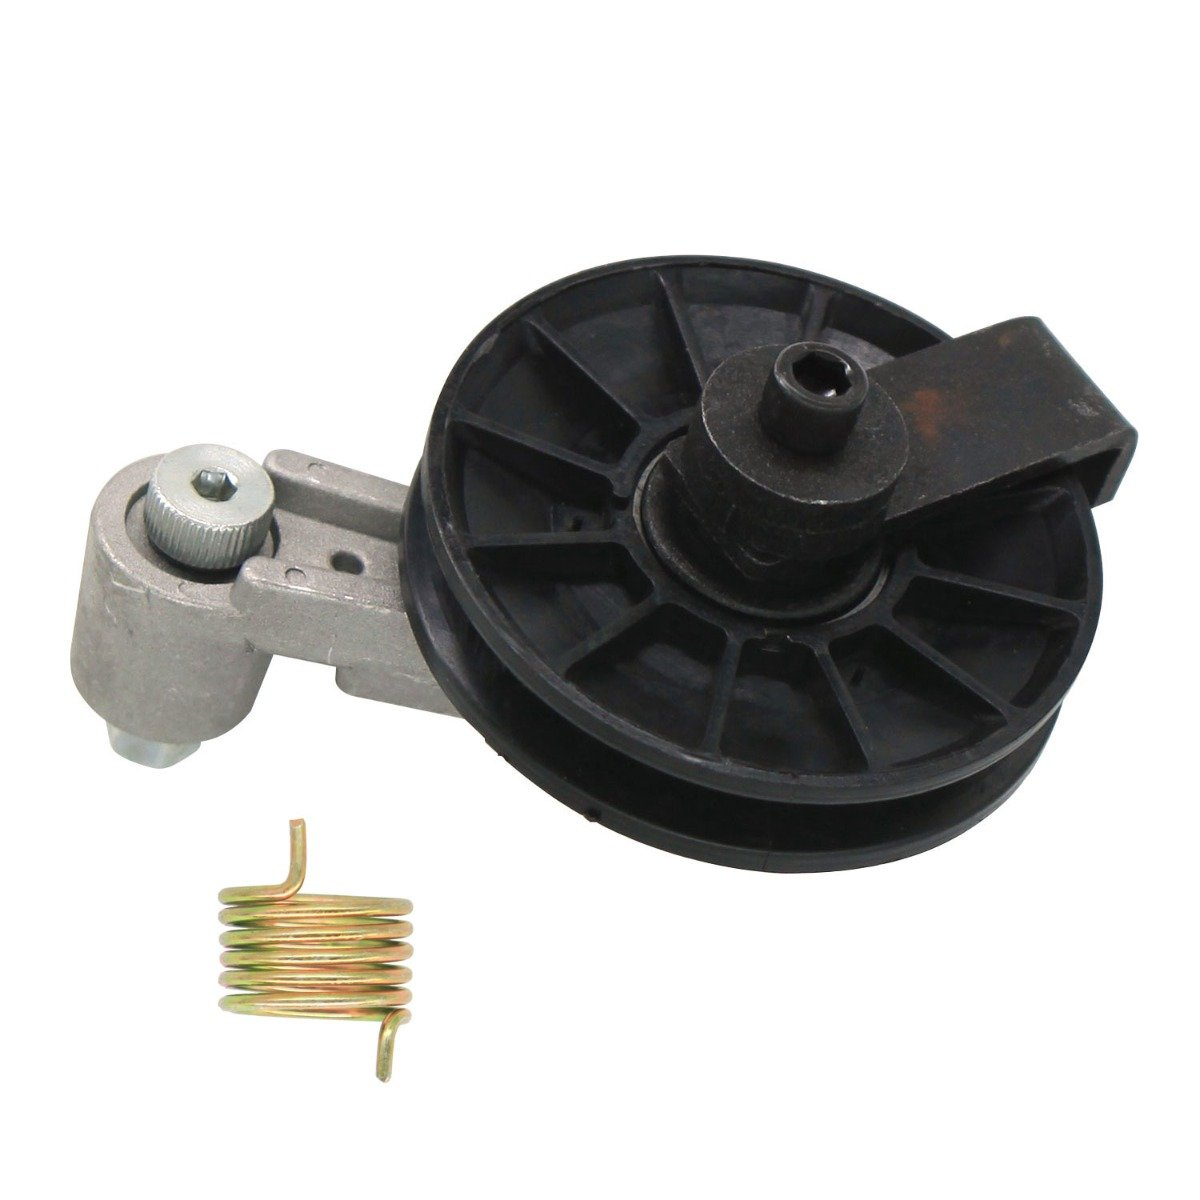 Cooling Fan Pulley Tensioner Kit 6662997 Compatible With Bobcat Skid Steer Loader 653 751 753 763 773 7753 853 863 864 873 883 A220 A300 S100 S130 S150 S160 S175 S185 S205 S220 T250 T300